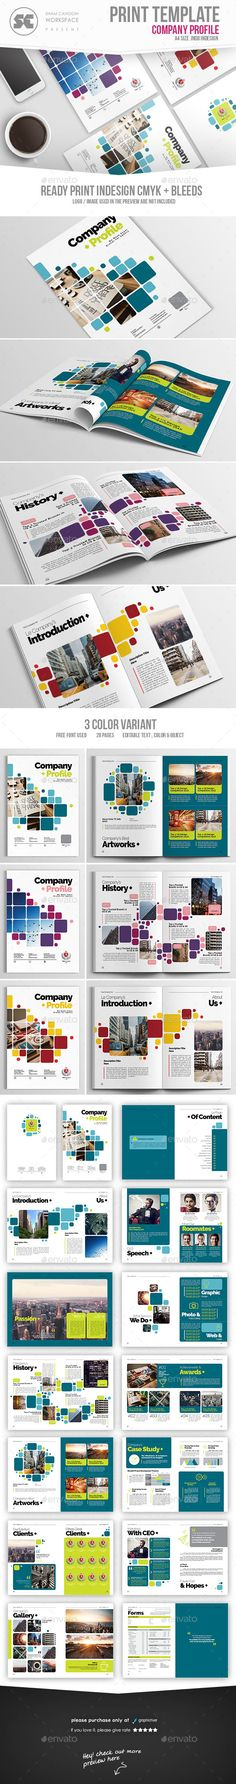 #Company Profile - Corporate #Brochures Download here: https://graphicriver.net/item/company-profile/17354491?ref=alena994